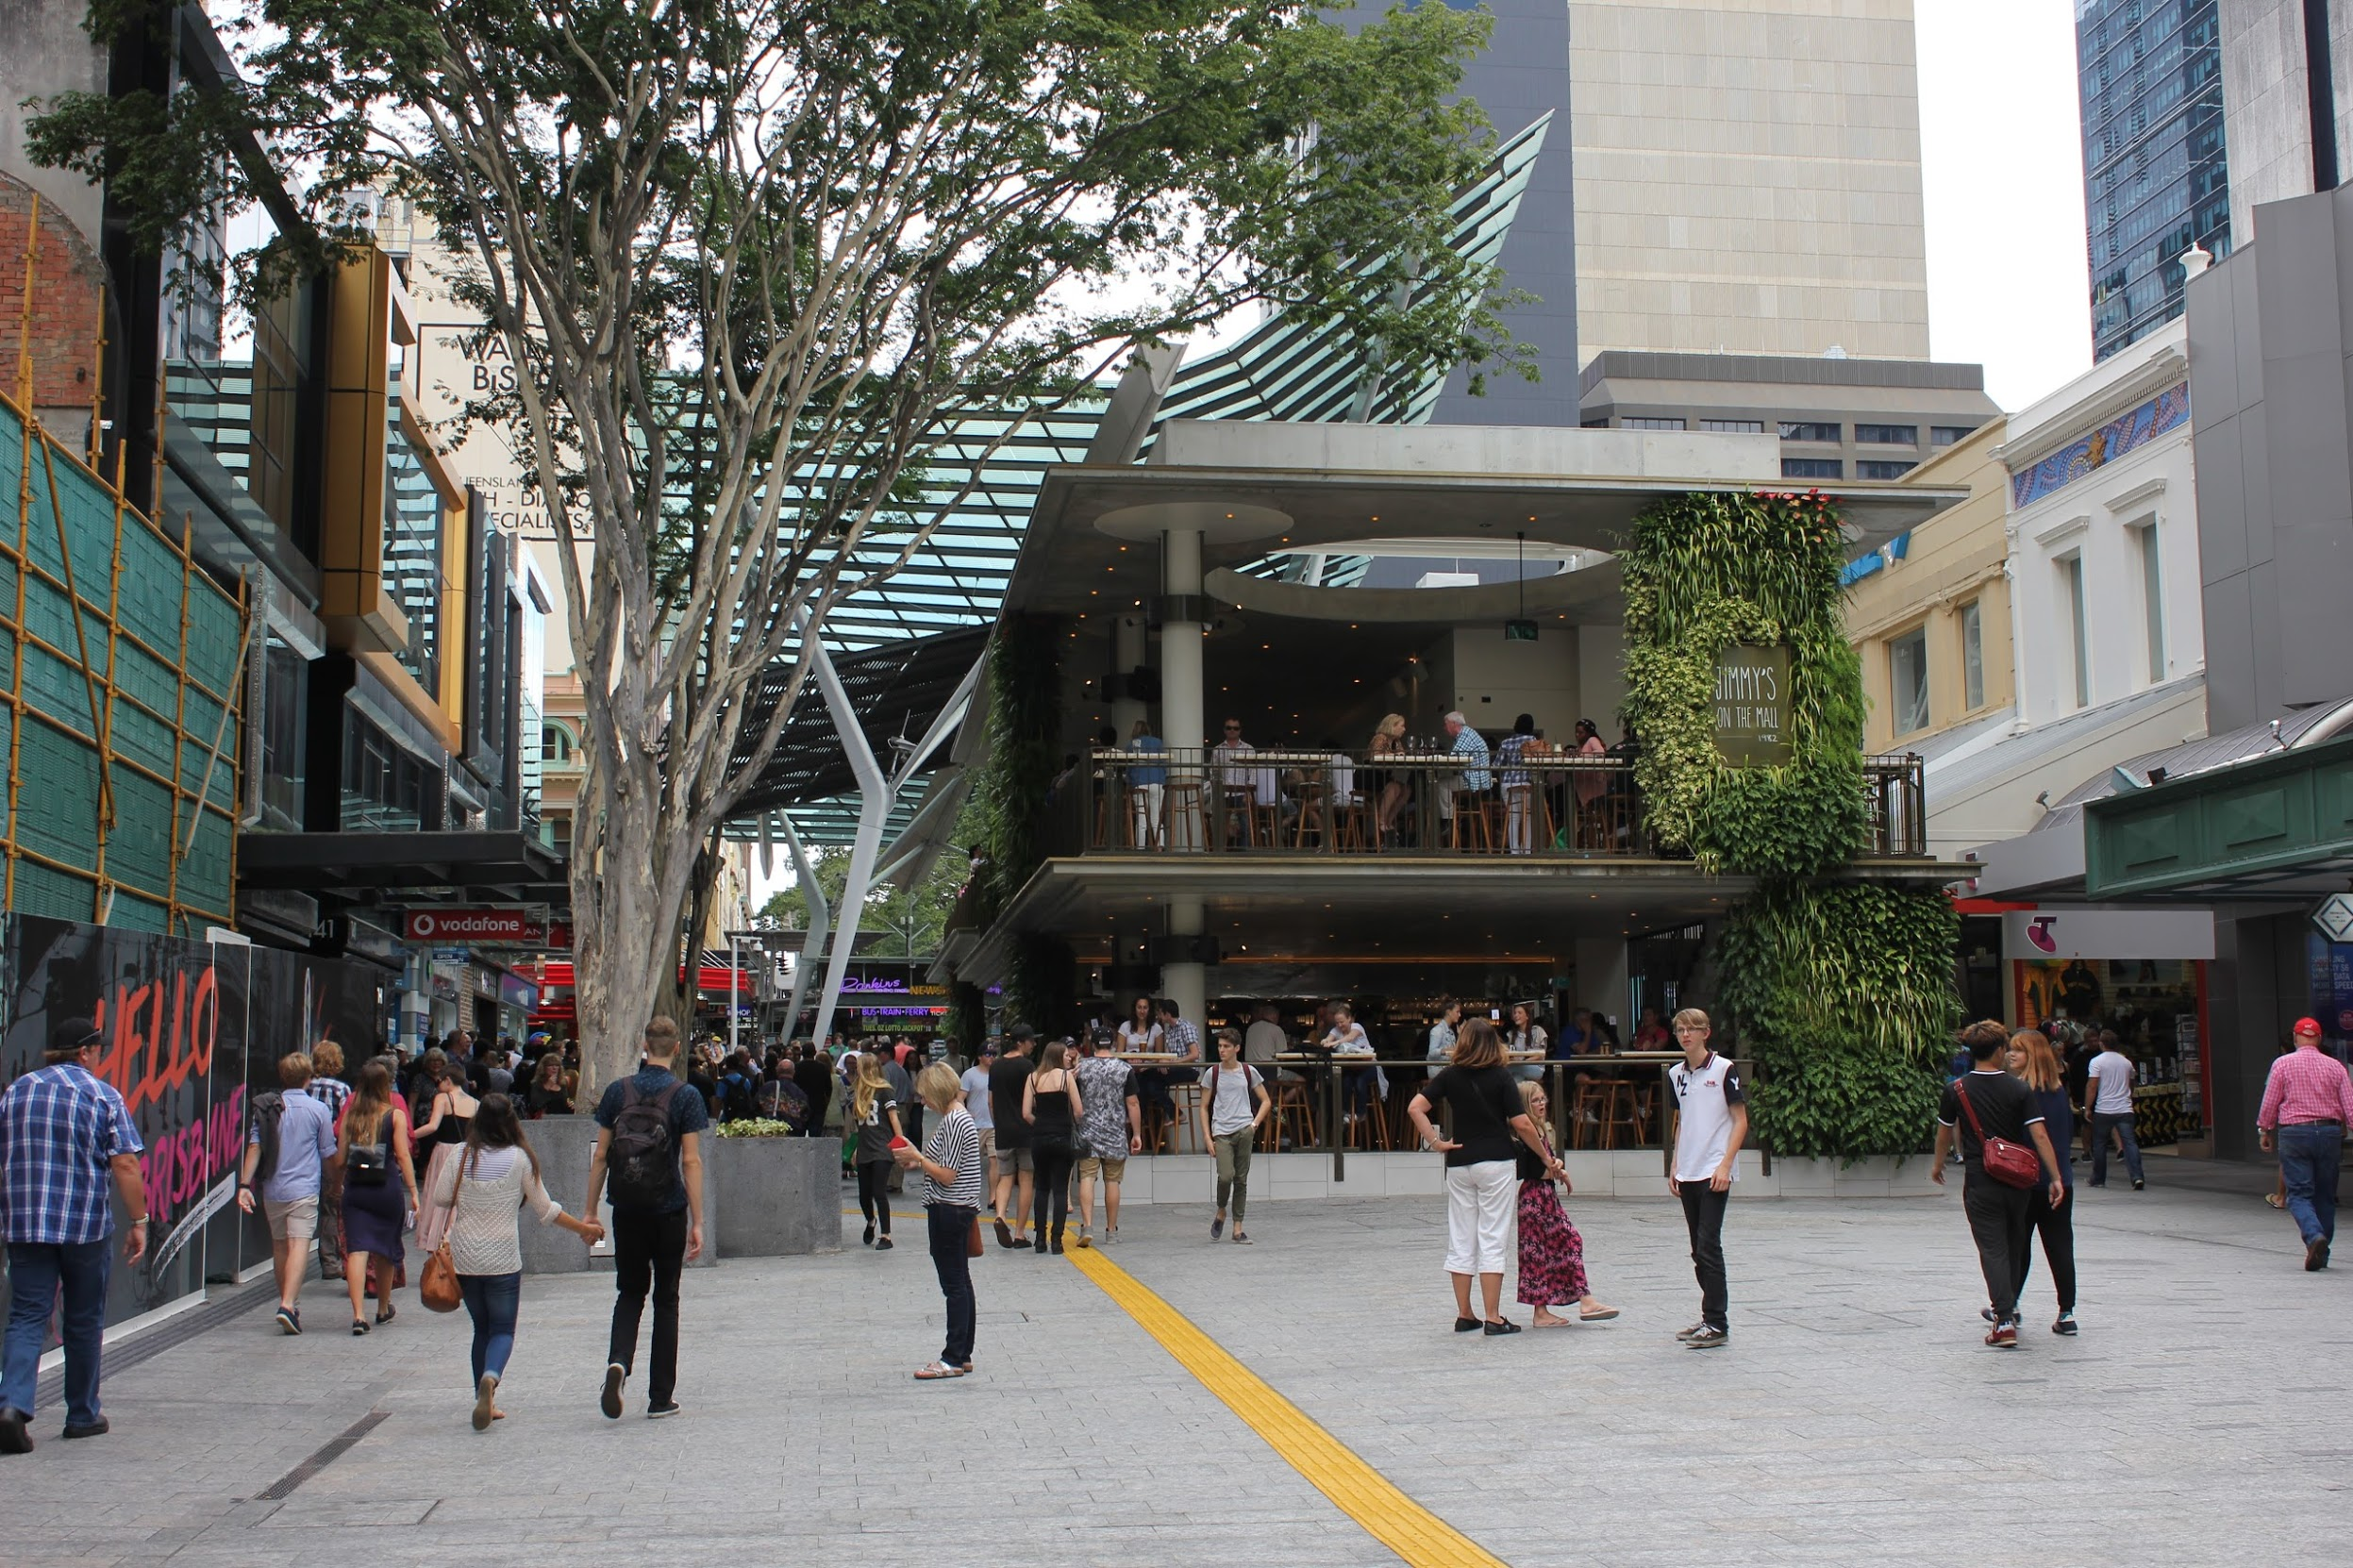 A two story restaurant in the middle of a pedestrian mall in Brisbane